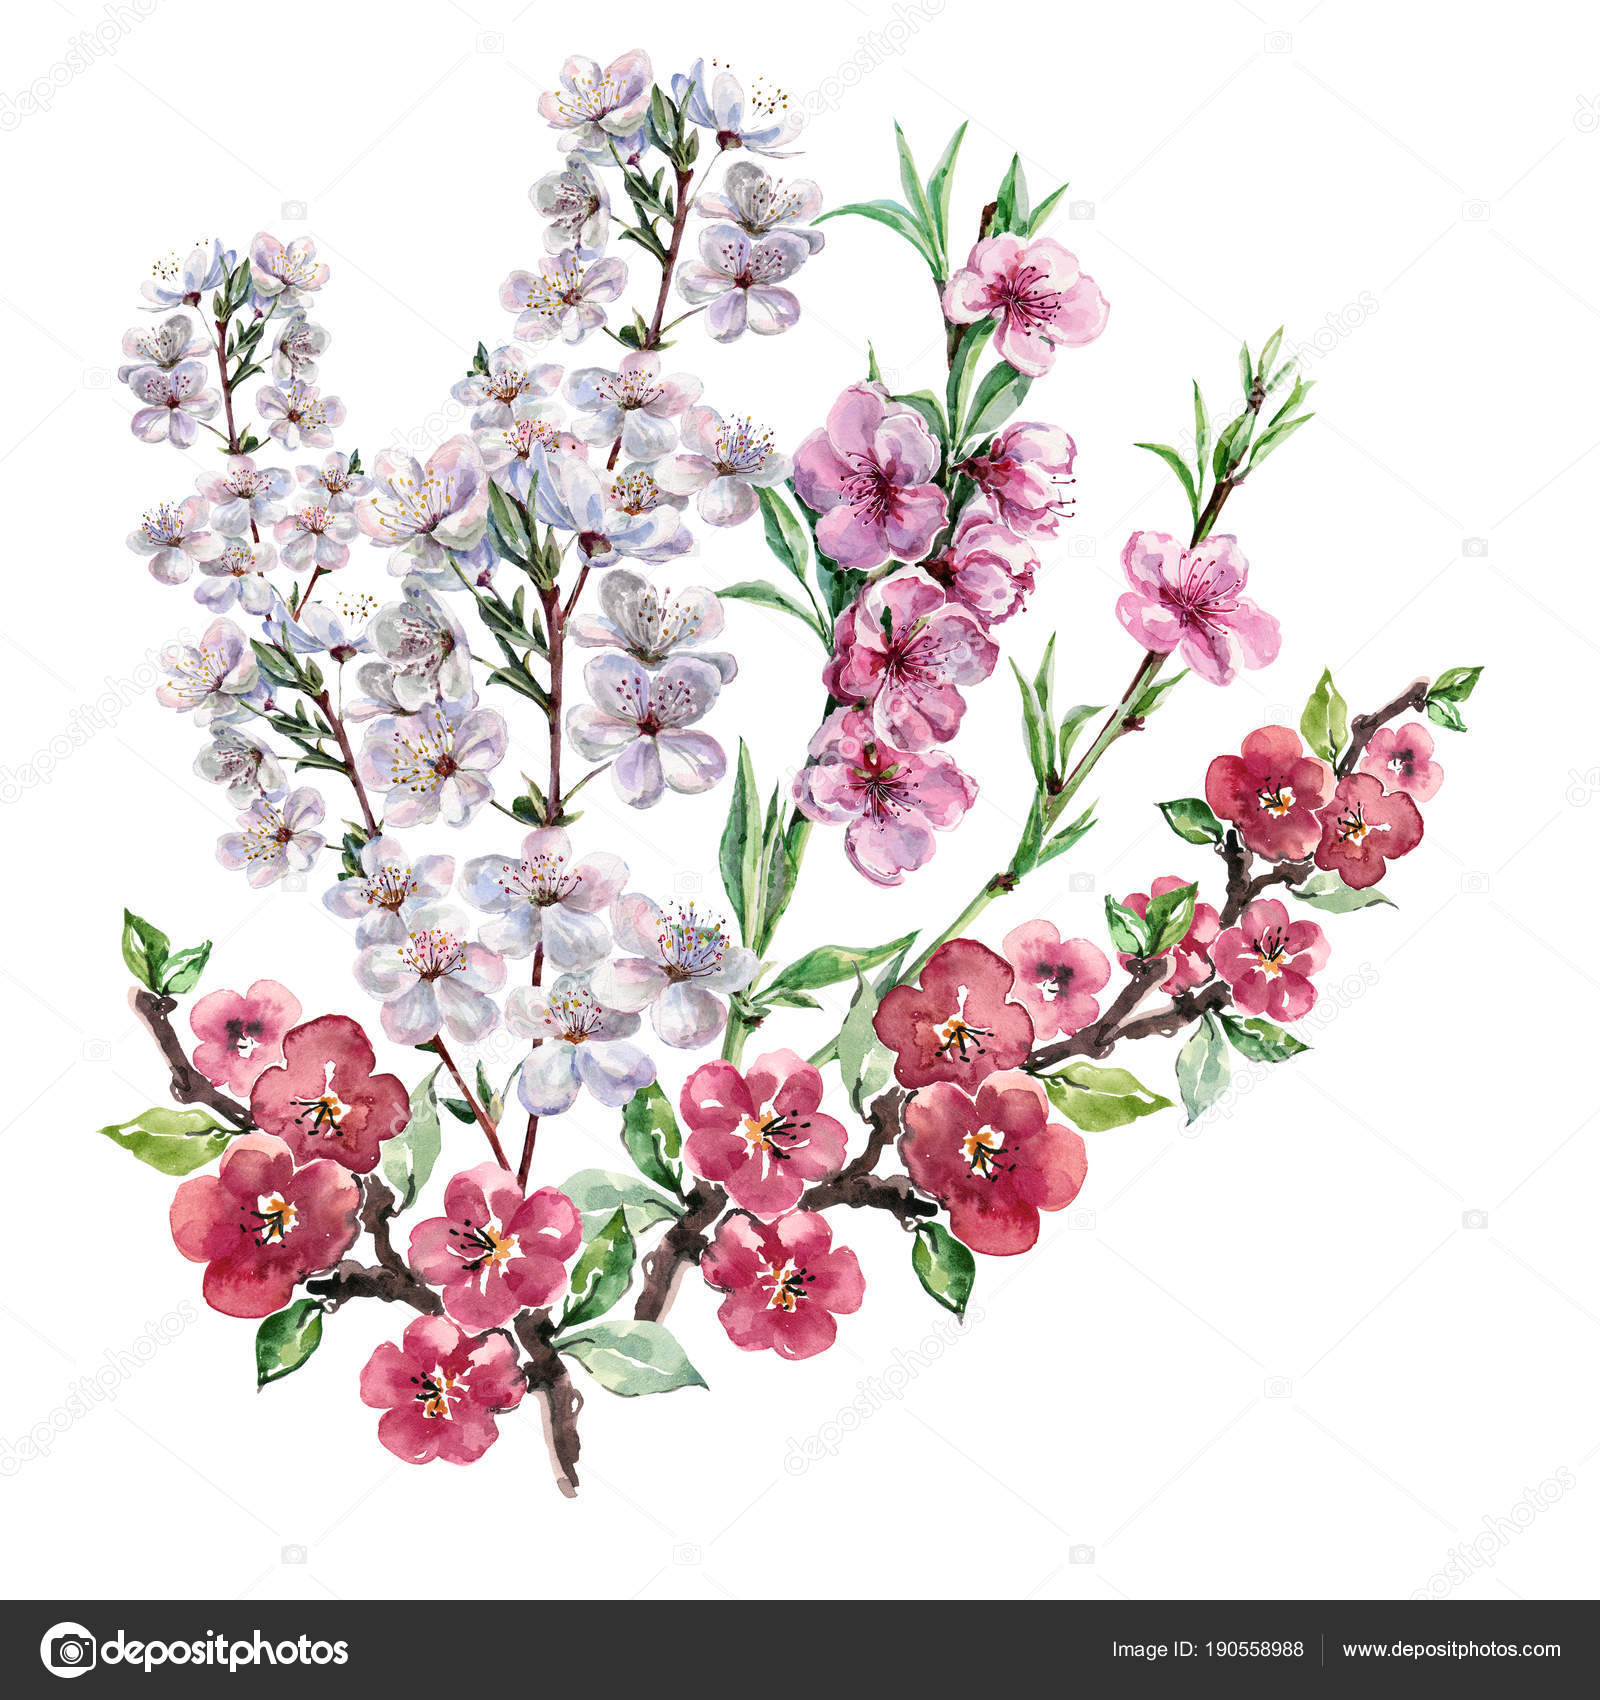 Watercolor Bouquet Spring Flowers Blooming Tree Illustration White